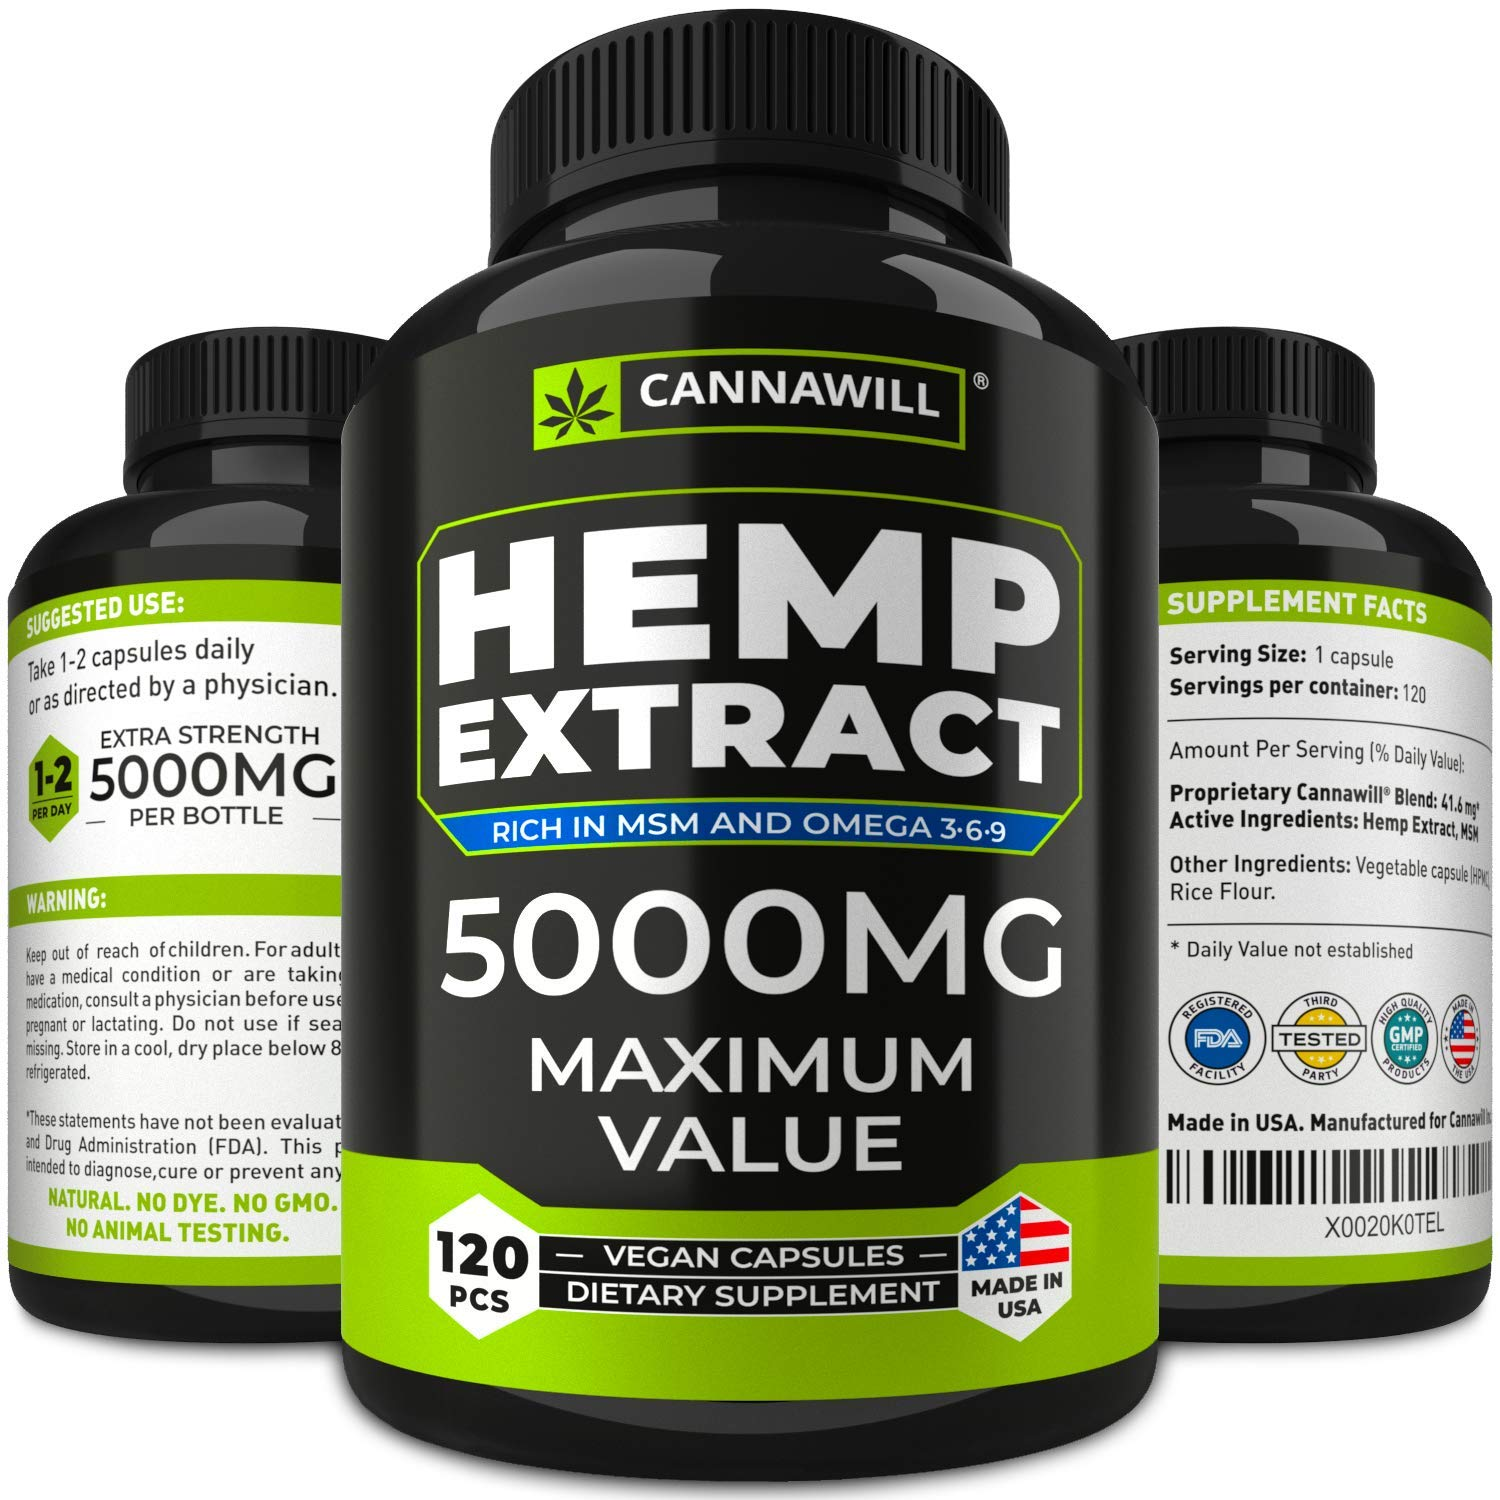 Hemp Oil Capsules 5000MG - Best for Anxiety & Stress Relief - Hemp Seed Oil Capsules Made in USA - 100% Natural Anti Inflammatory, Mood & Immune Support - Good for Skin, Hair & Nails - Omega 3 by CANNAWILL